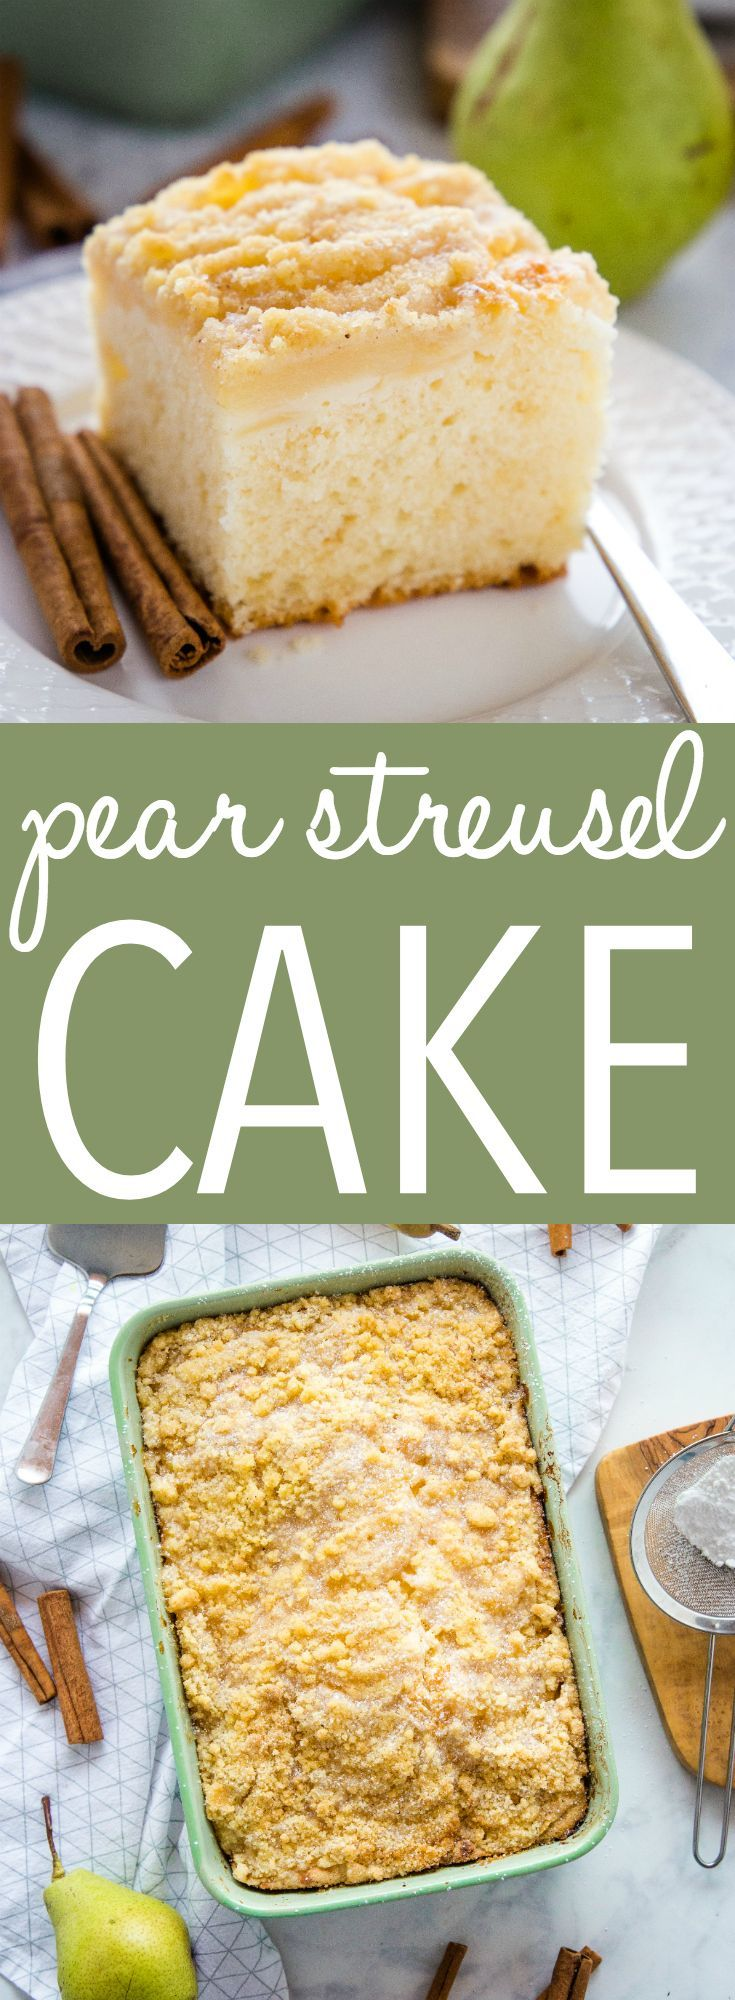 Pear Streusel Cake This Pear Streusel Cake is the perfect fall and winter dessert with an easy-to make tender cake base and a delicious streusel topping - make it with fresh or canned pears for an easy dessert! Recipe from ! via @busybakerblog